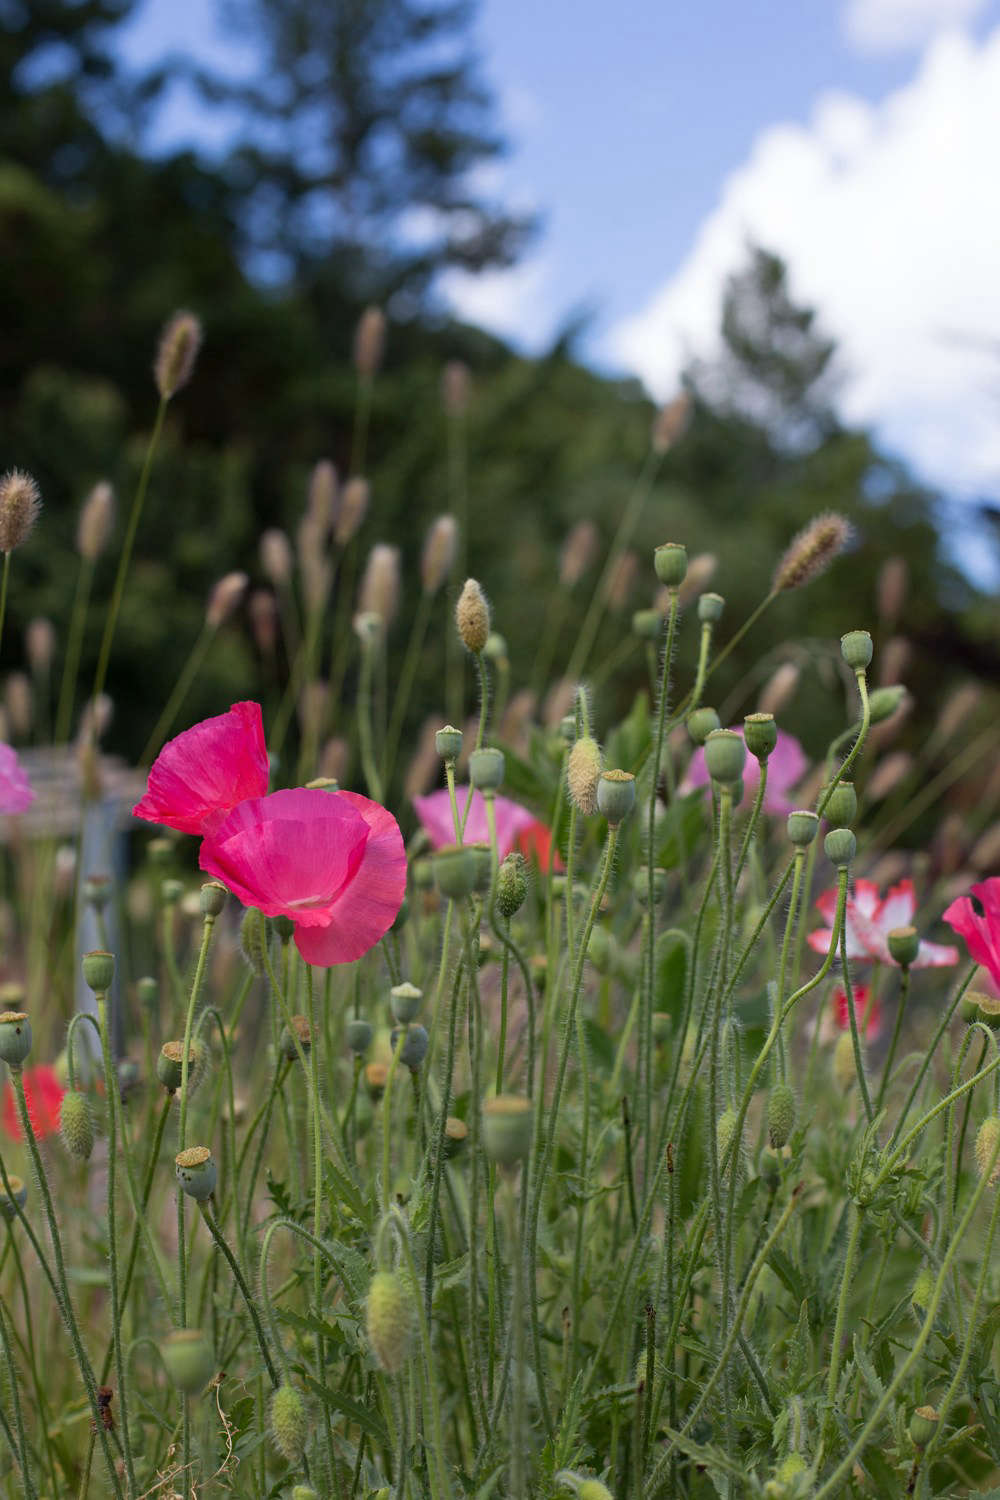 It is not really possible to go wrong with poppies, whether you plant fringed, double, or velvety lipstick-pink varieties such as Cupcake or Poppy of Troy,both among the dozens of varieties available seasonally for from $4.95 to $5.95 for a 4-inch pot from Annie&#8